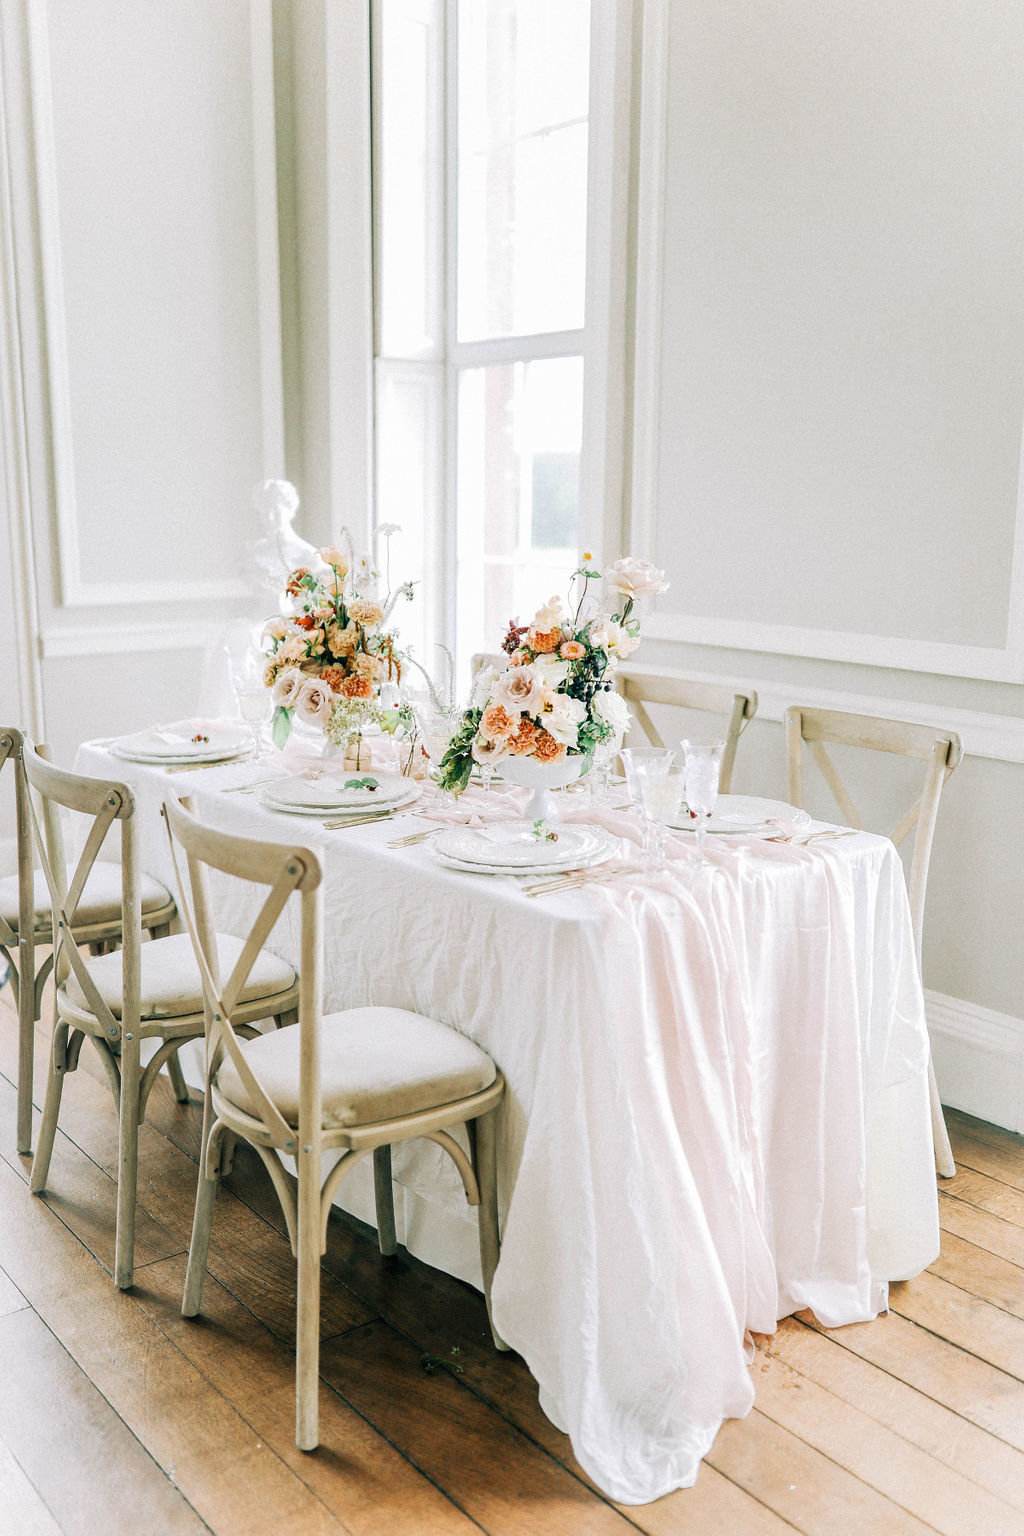 Fine Art Wedding Table Styling Inspiration